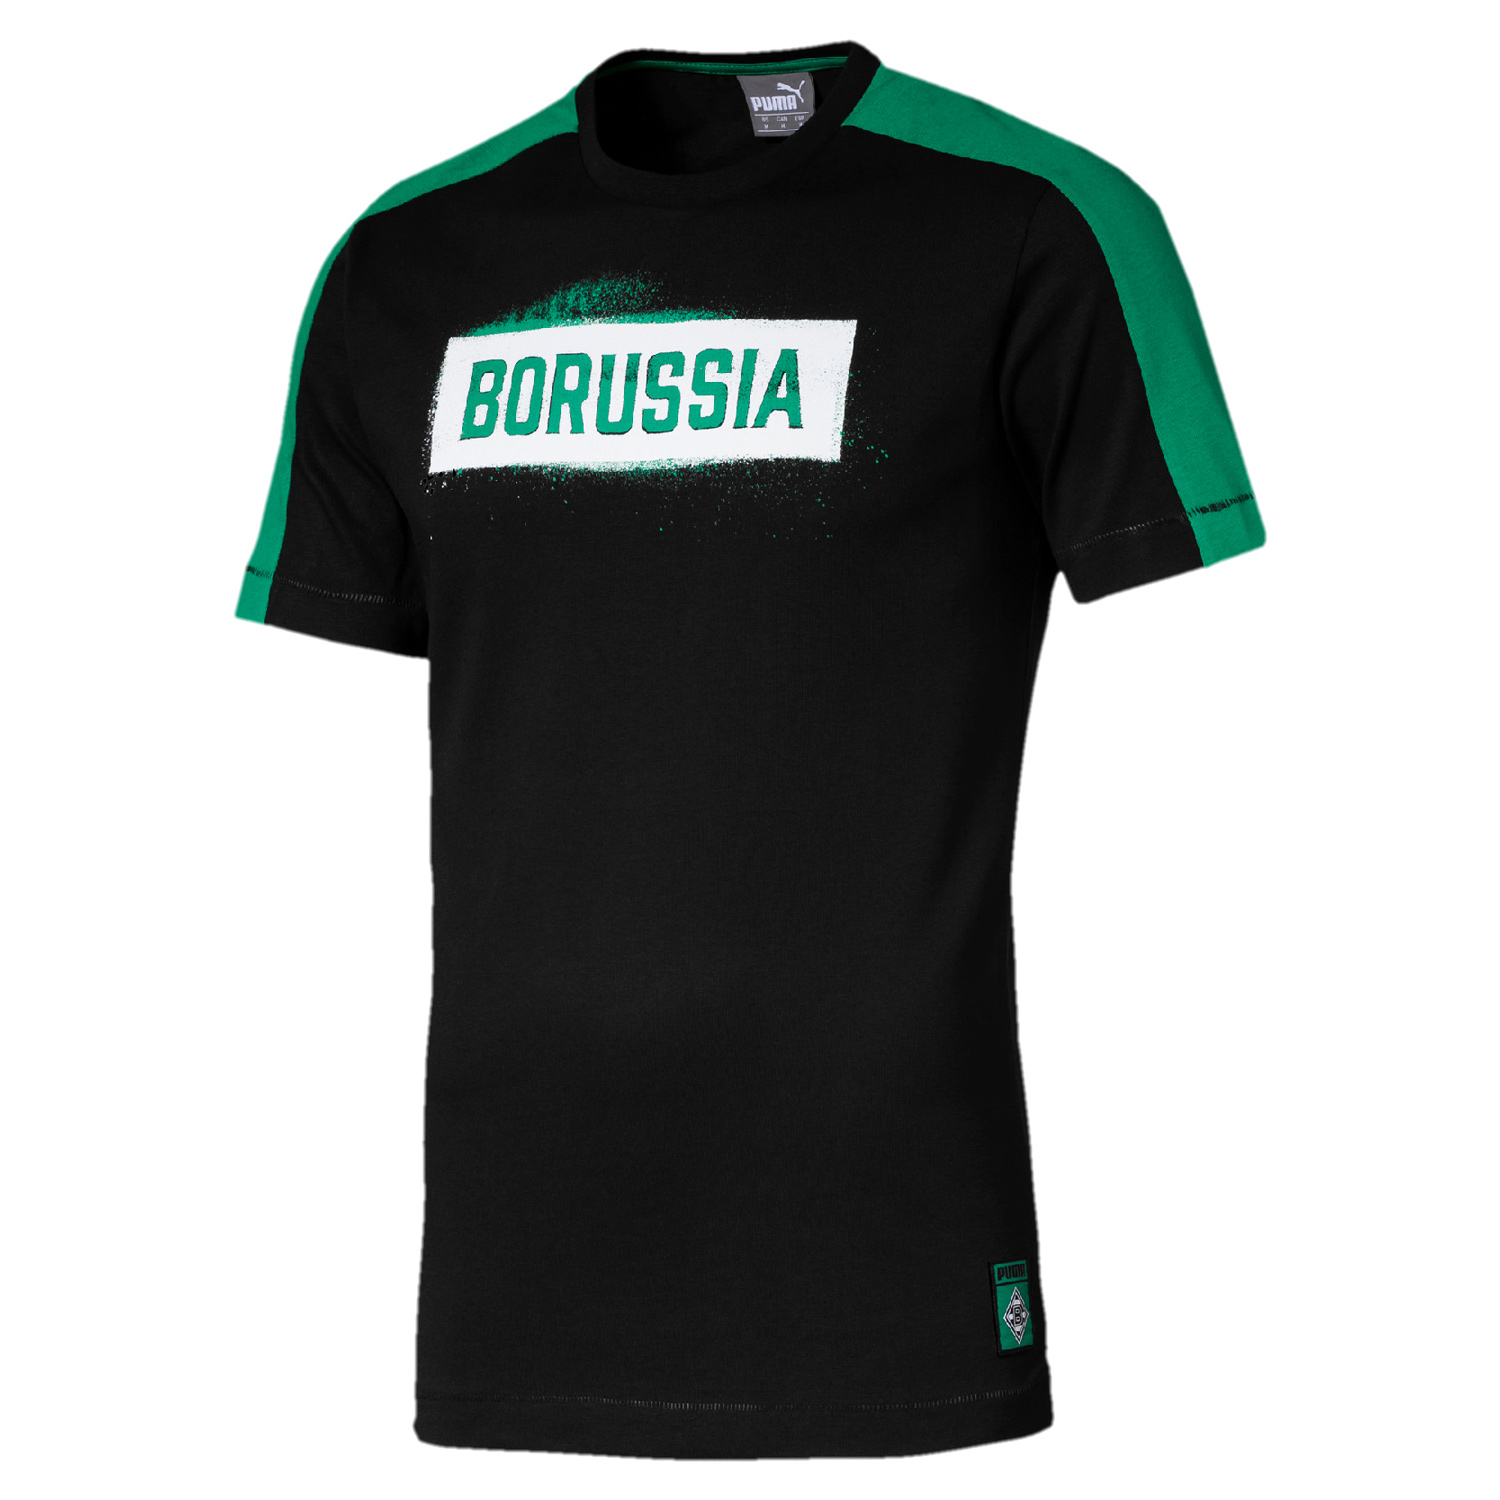 puma borussia m nchengladbach herren stencil tee shirt 754186 01 fanshop national borussia. Black Bedroom Furniture Sets. Home Design Ideas